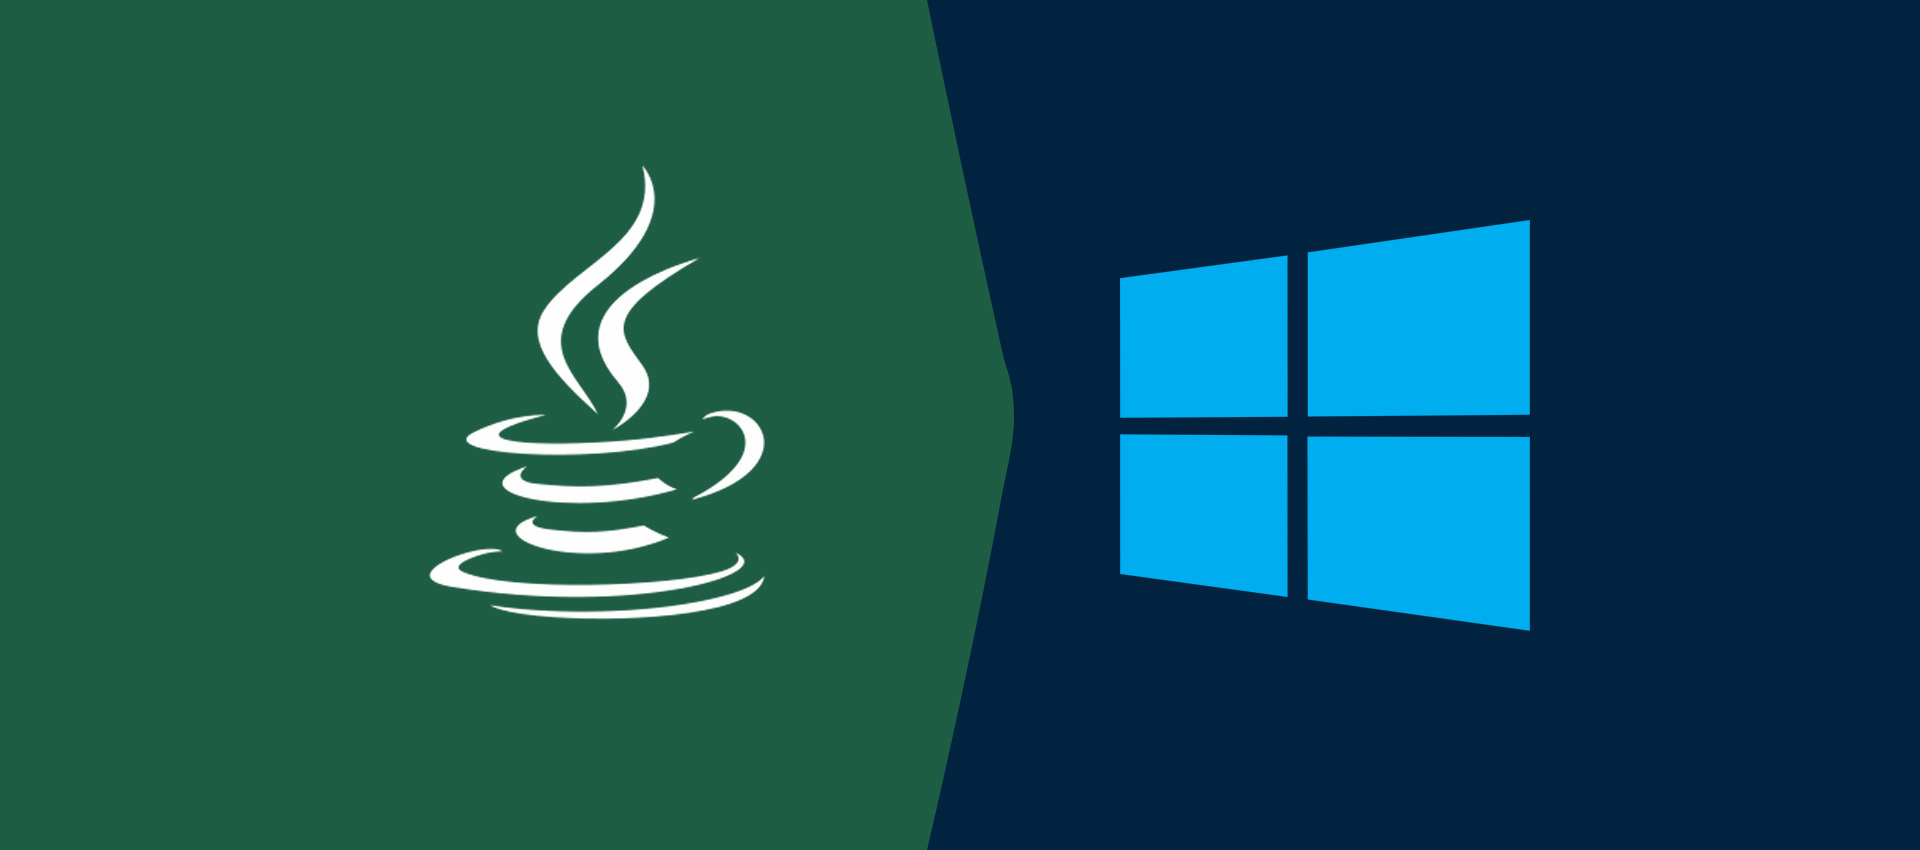 How To Install Java 10 On Windows